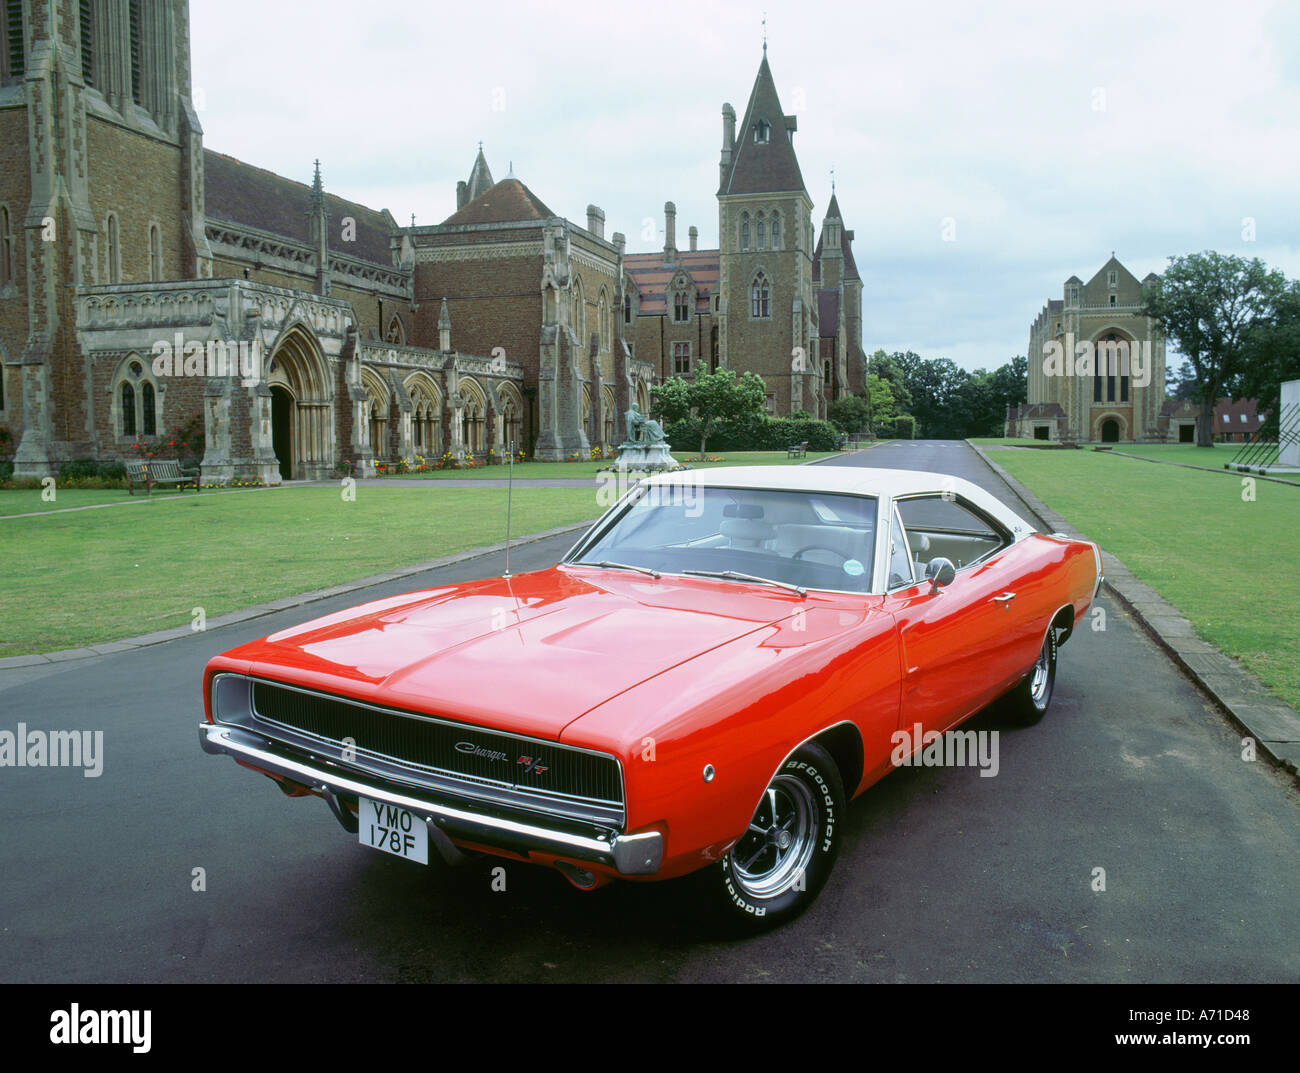 1968 dodge charger 440 magnum - stock image